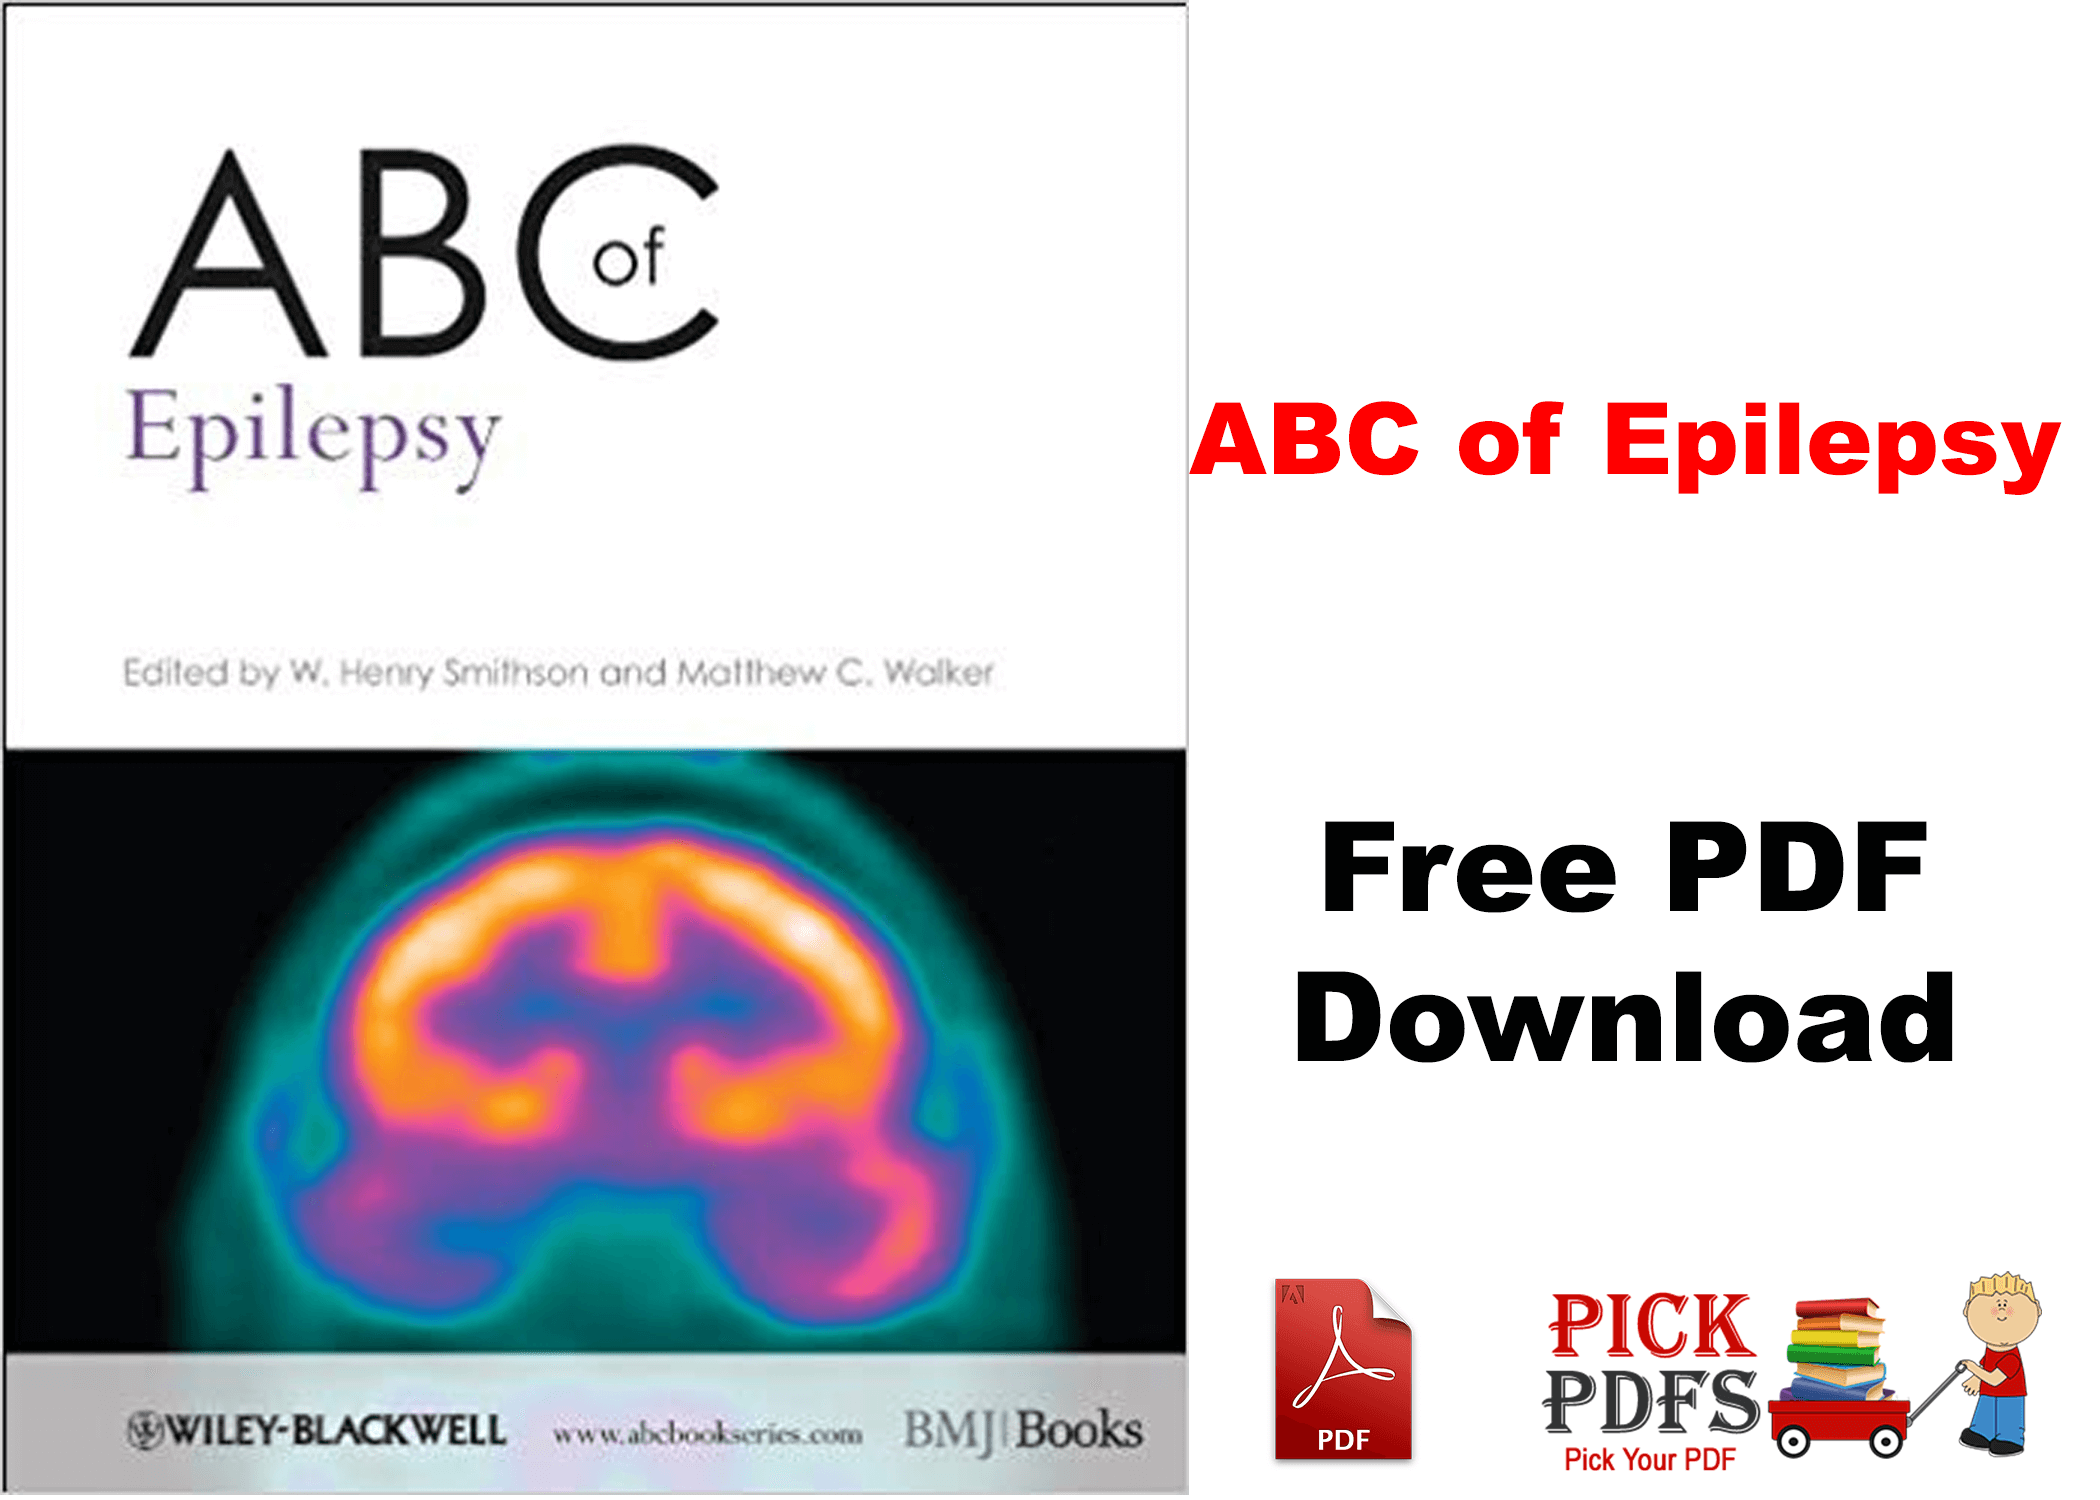 https://pickpdfs.com/abc-of-epilepsy-free-pdfdownload-direct-link/